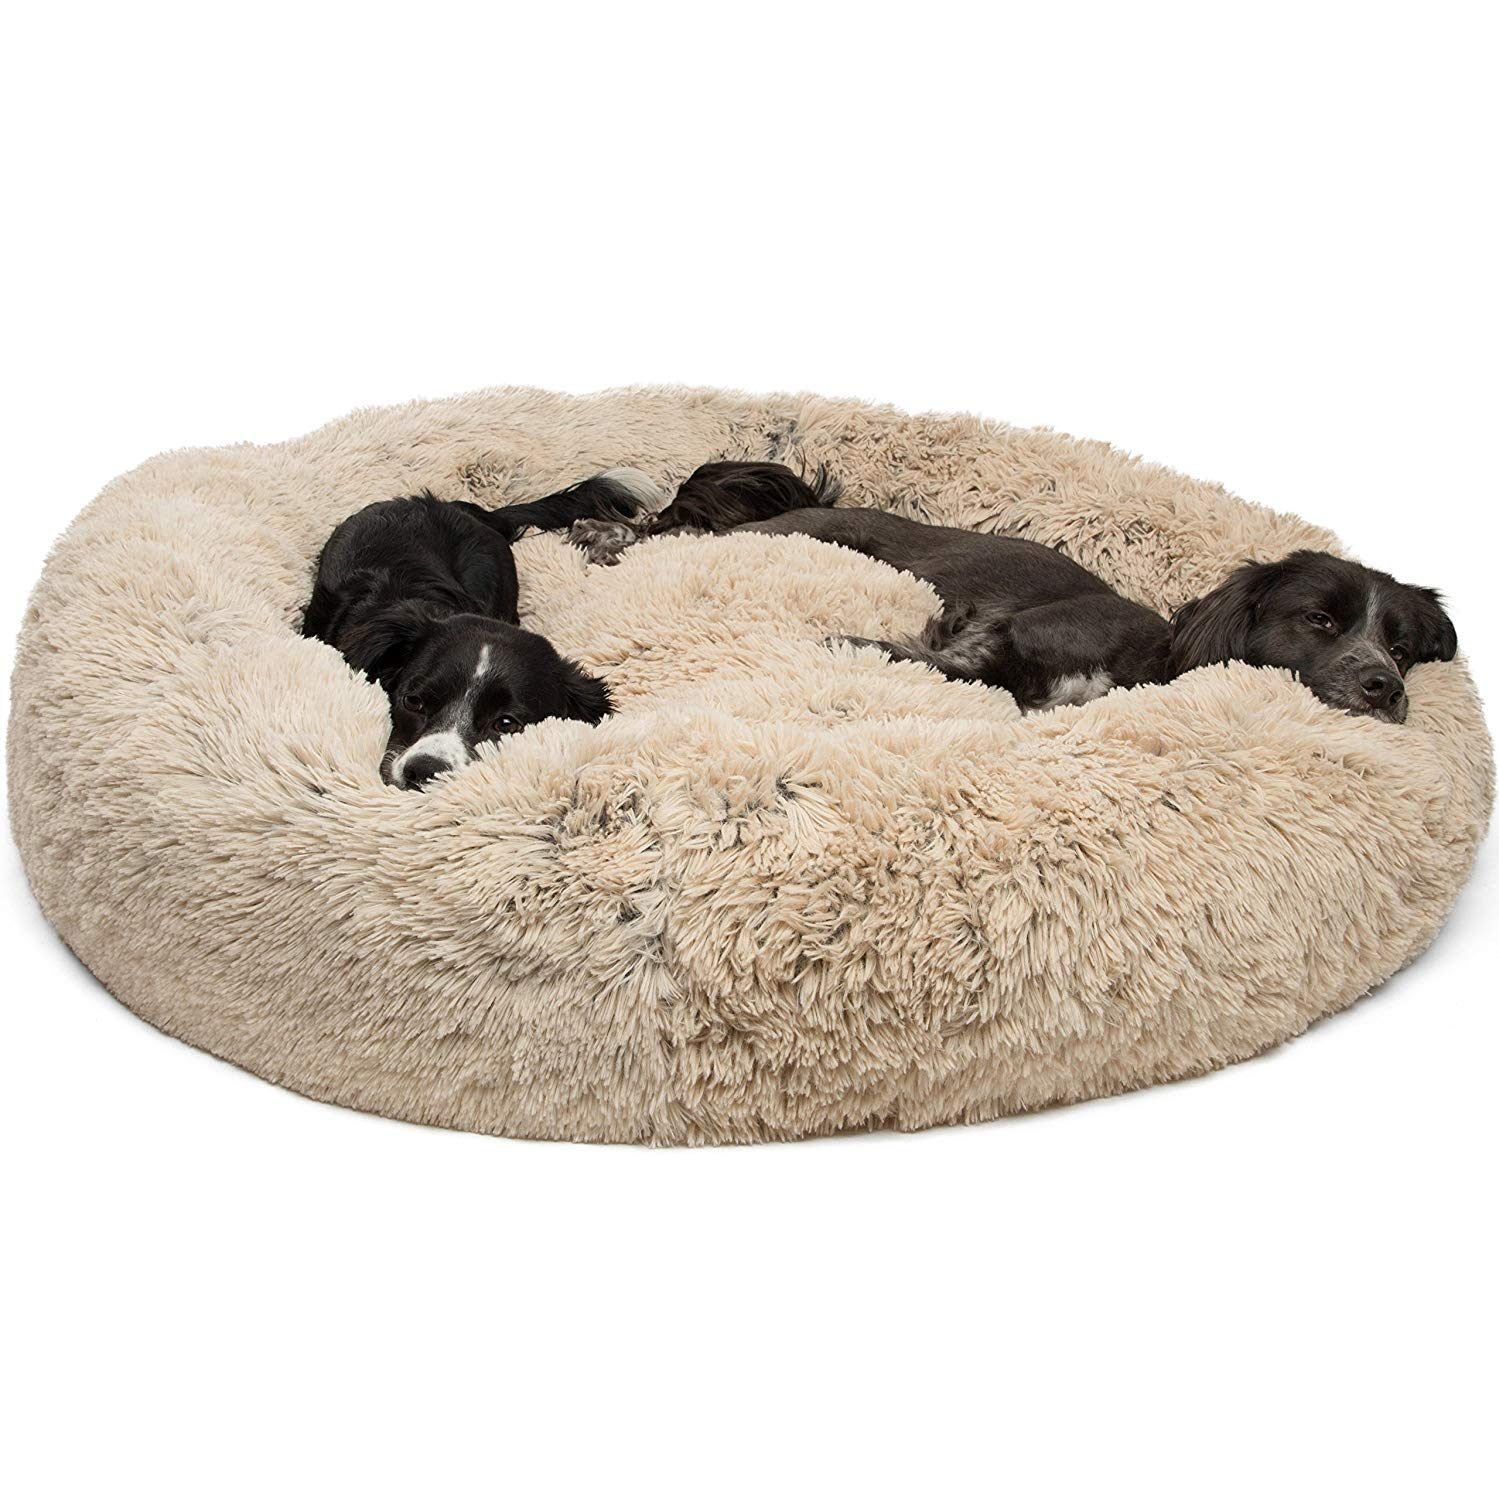 Best Dog Beds Top Rated Dog Beds 2019 American Kennel Club